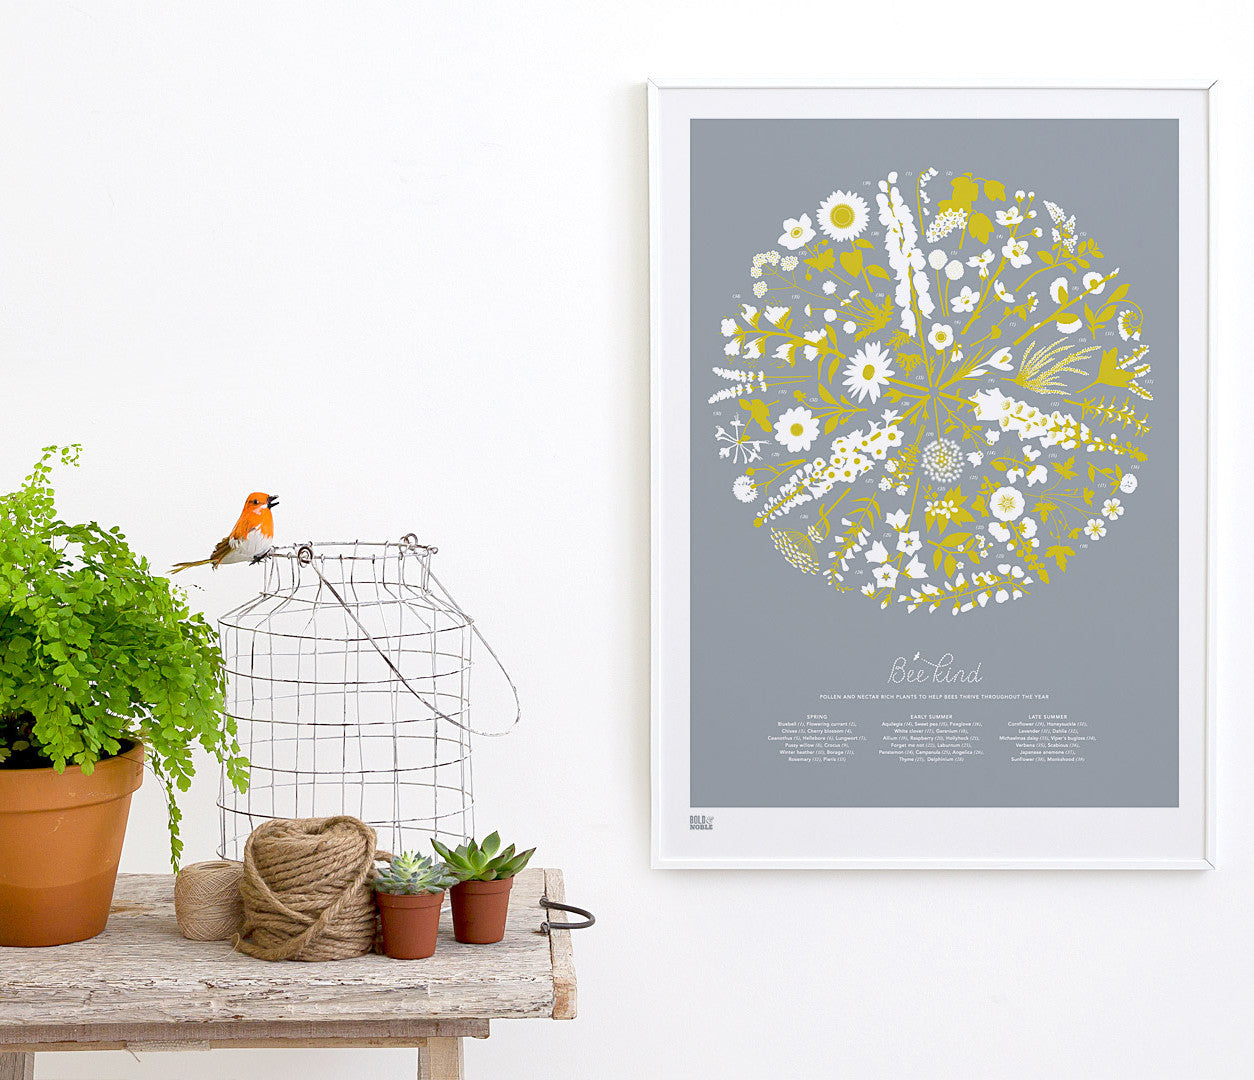 Pictures and wall art, screen printed Bee Kind floral poster in grey and yellow